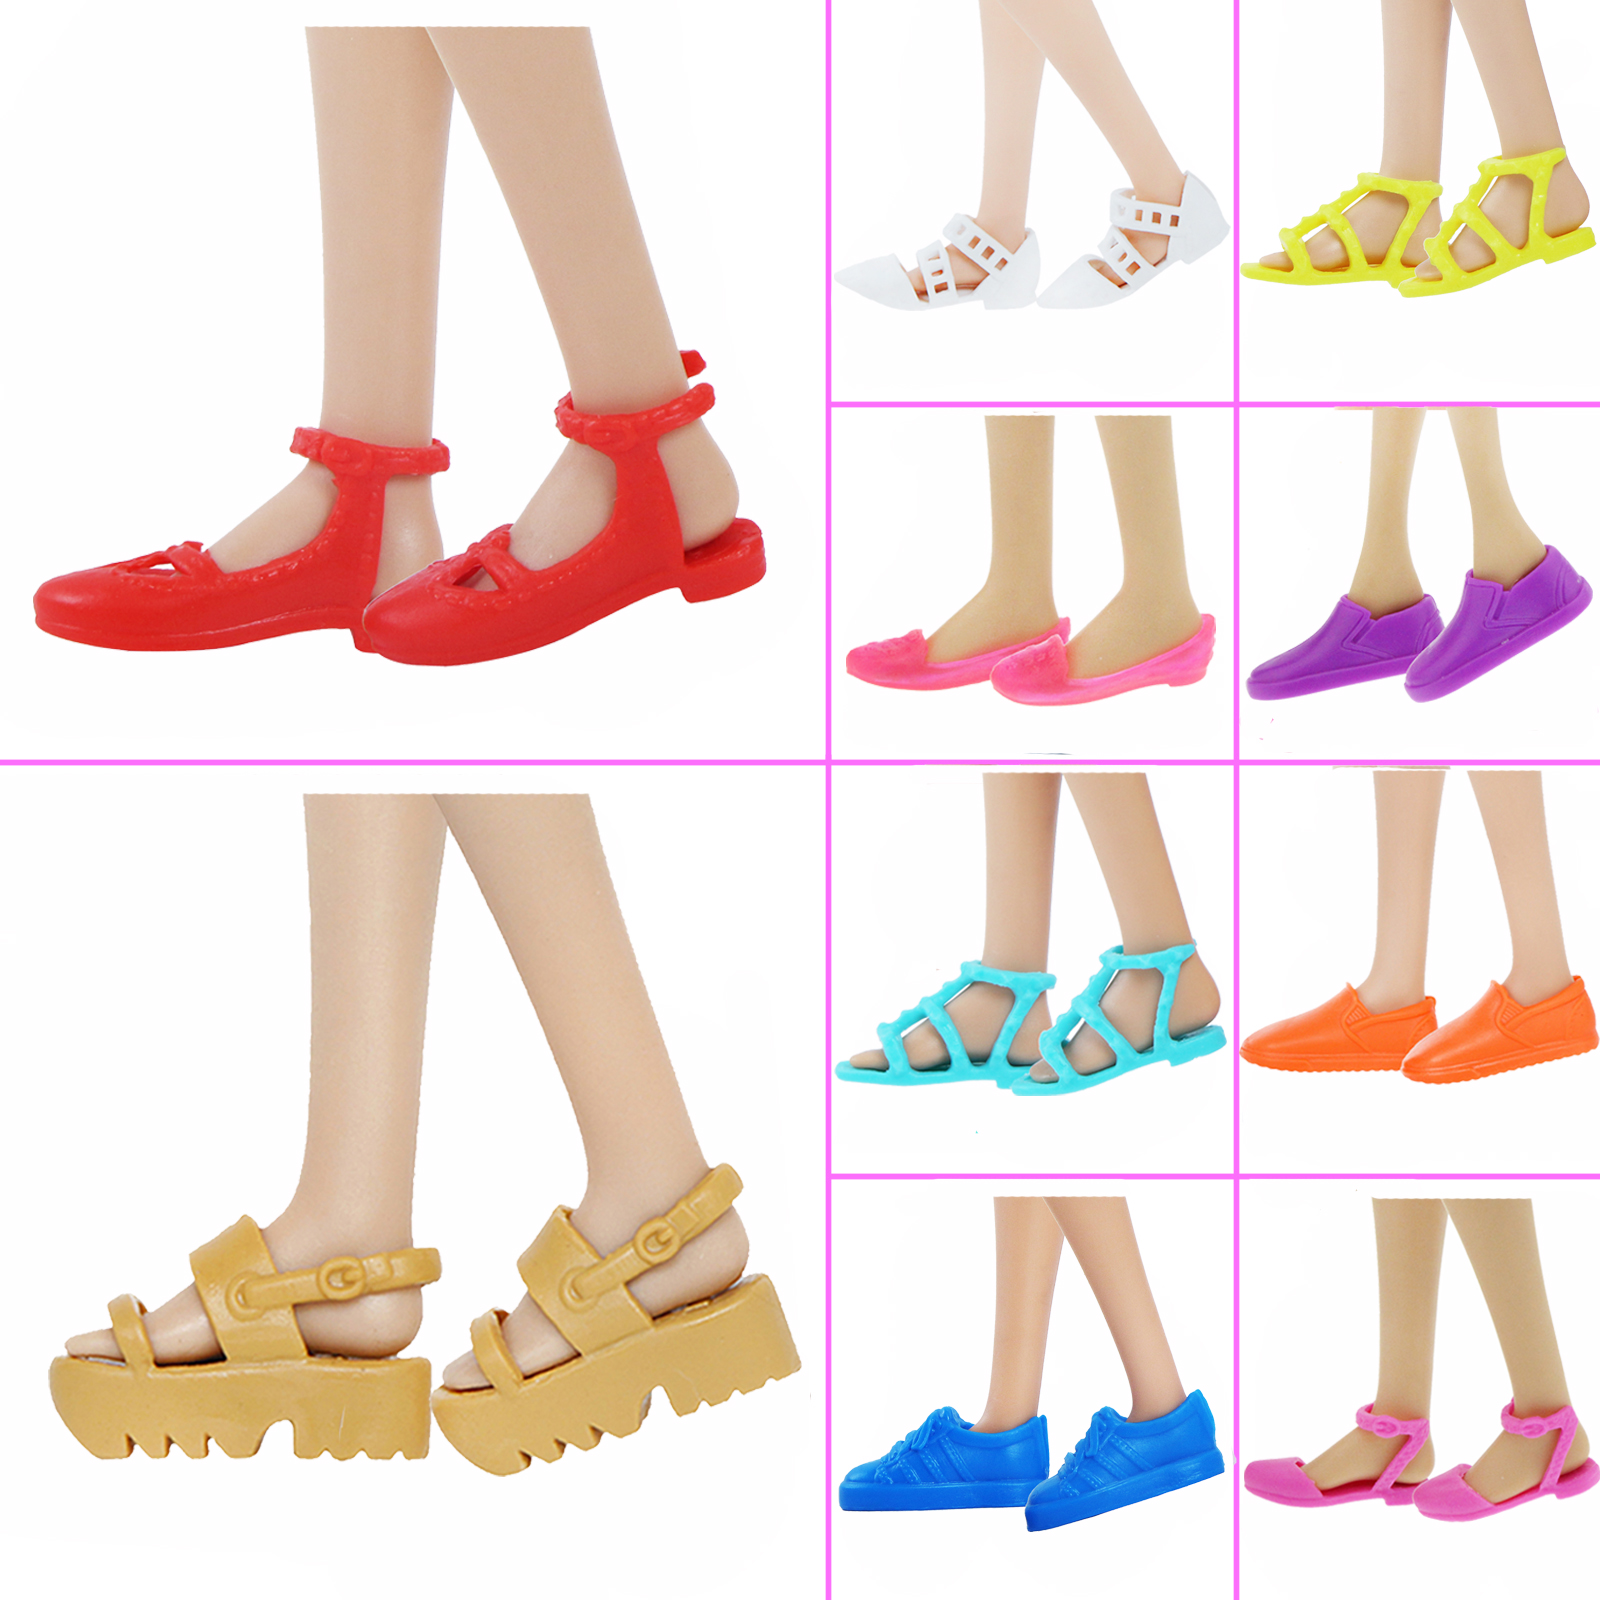 1 Pair Fashion Daily Sneakers Flat Shoes Flats Sandals Pumps For Barbie Doll Summer Dress Clothes Accessories Kids Toy